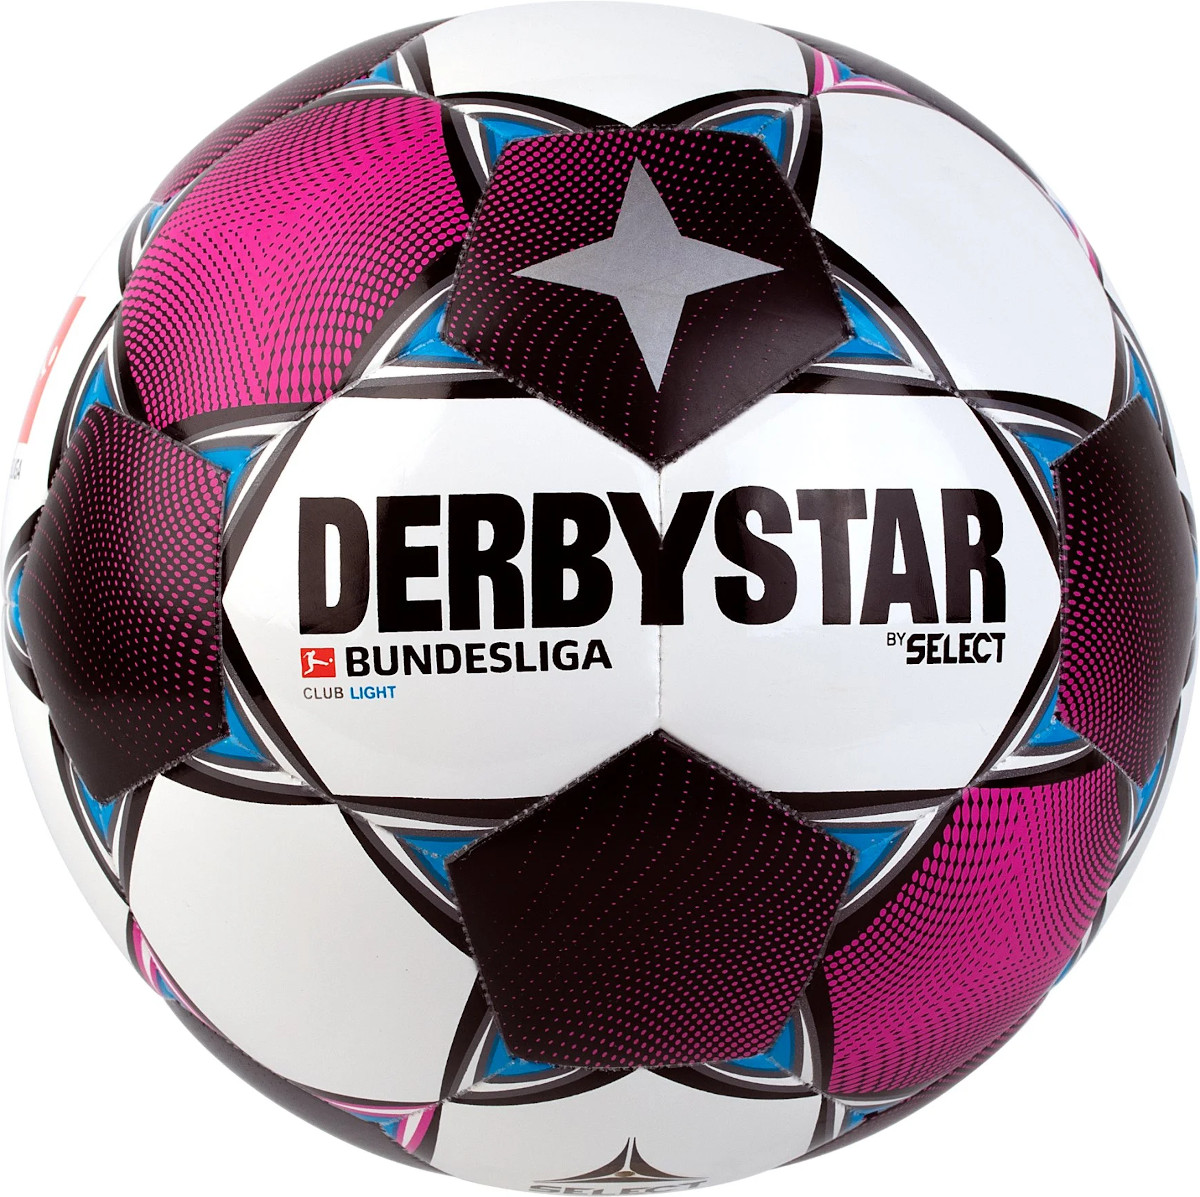 Lopta Derbystar Bundesliga Club Light 350g training ball